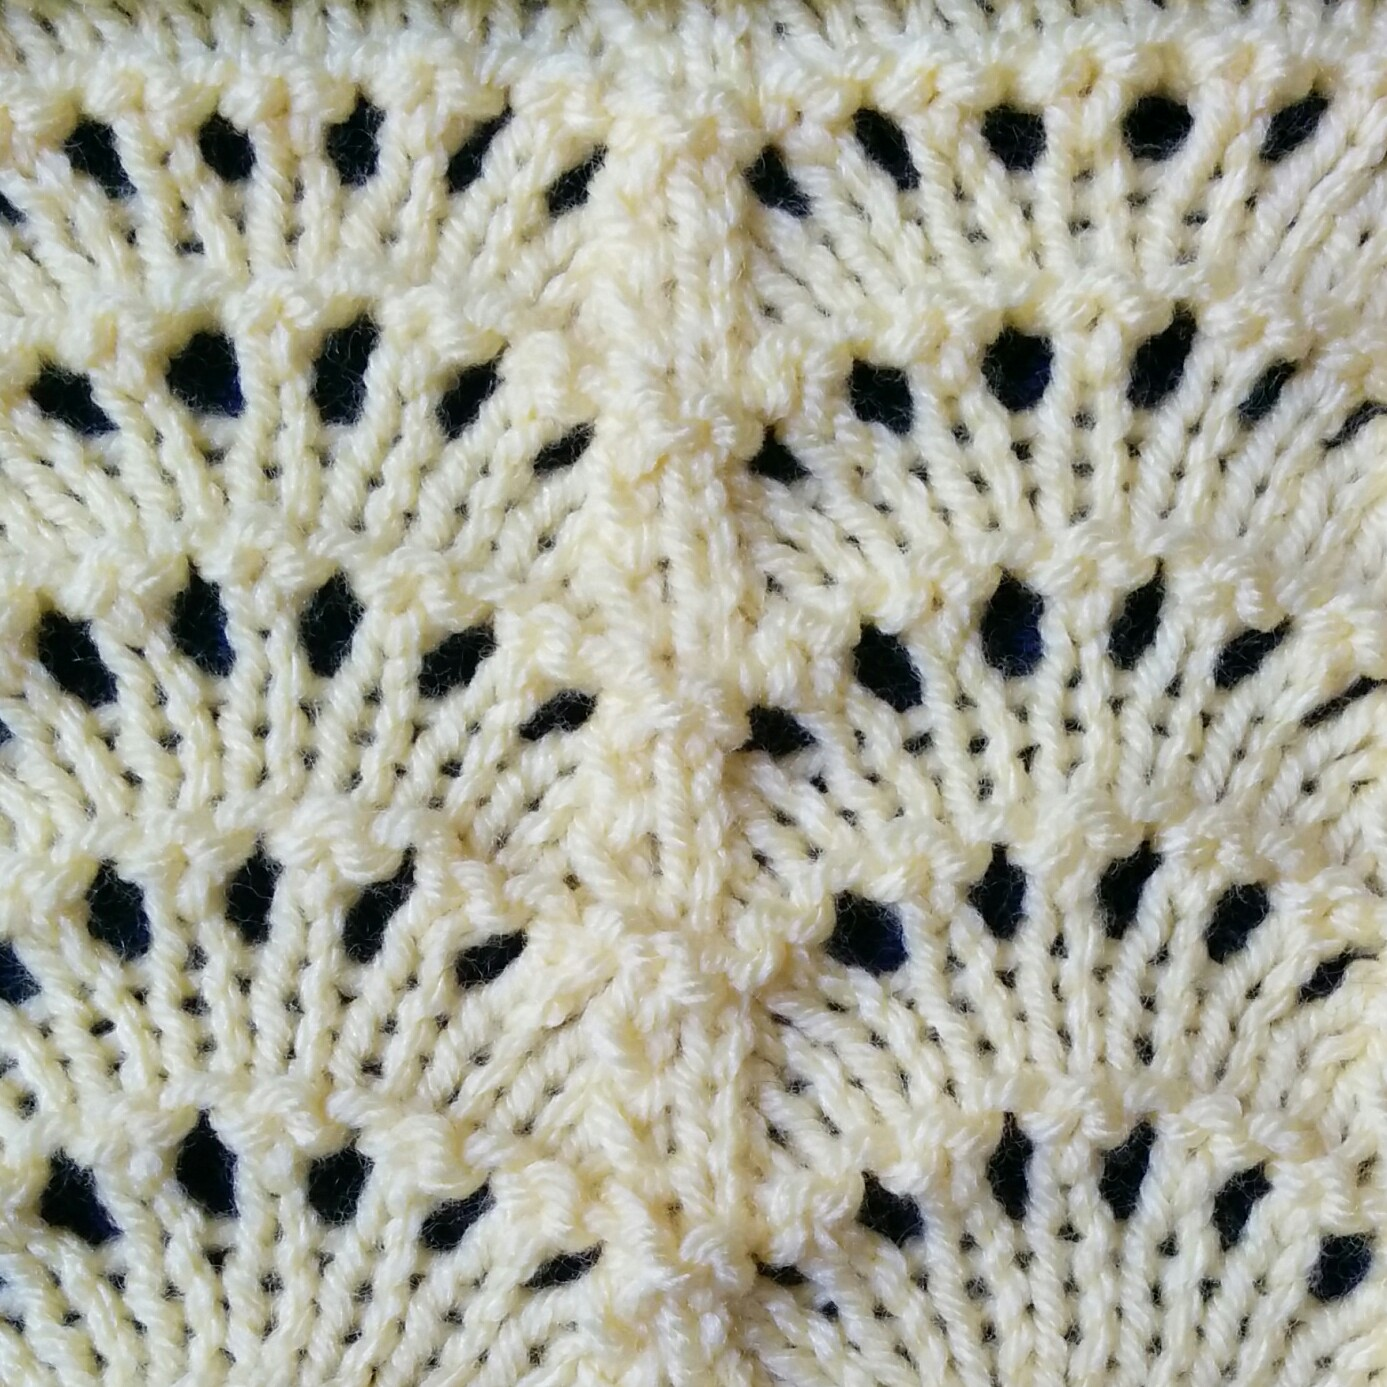 Openwork Lace Knitting Pattern : Fan Stitch - Purl Avenue